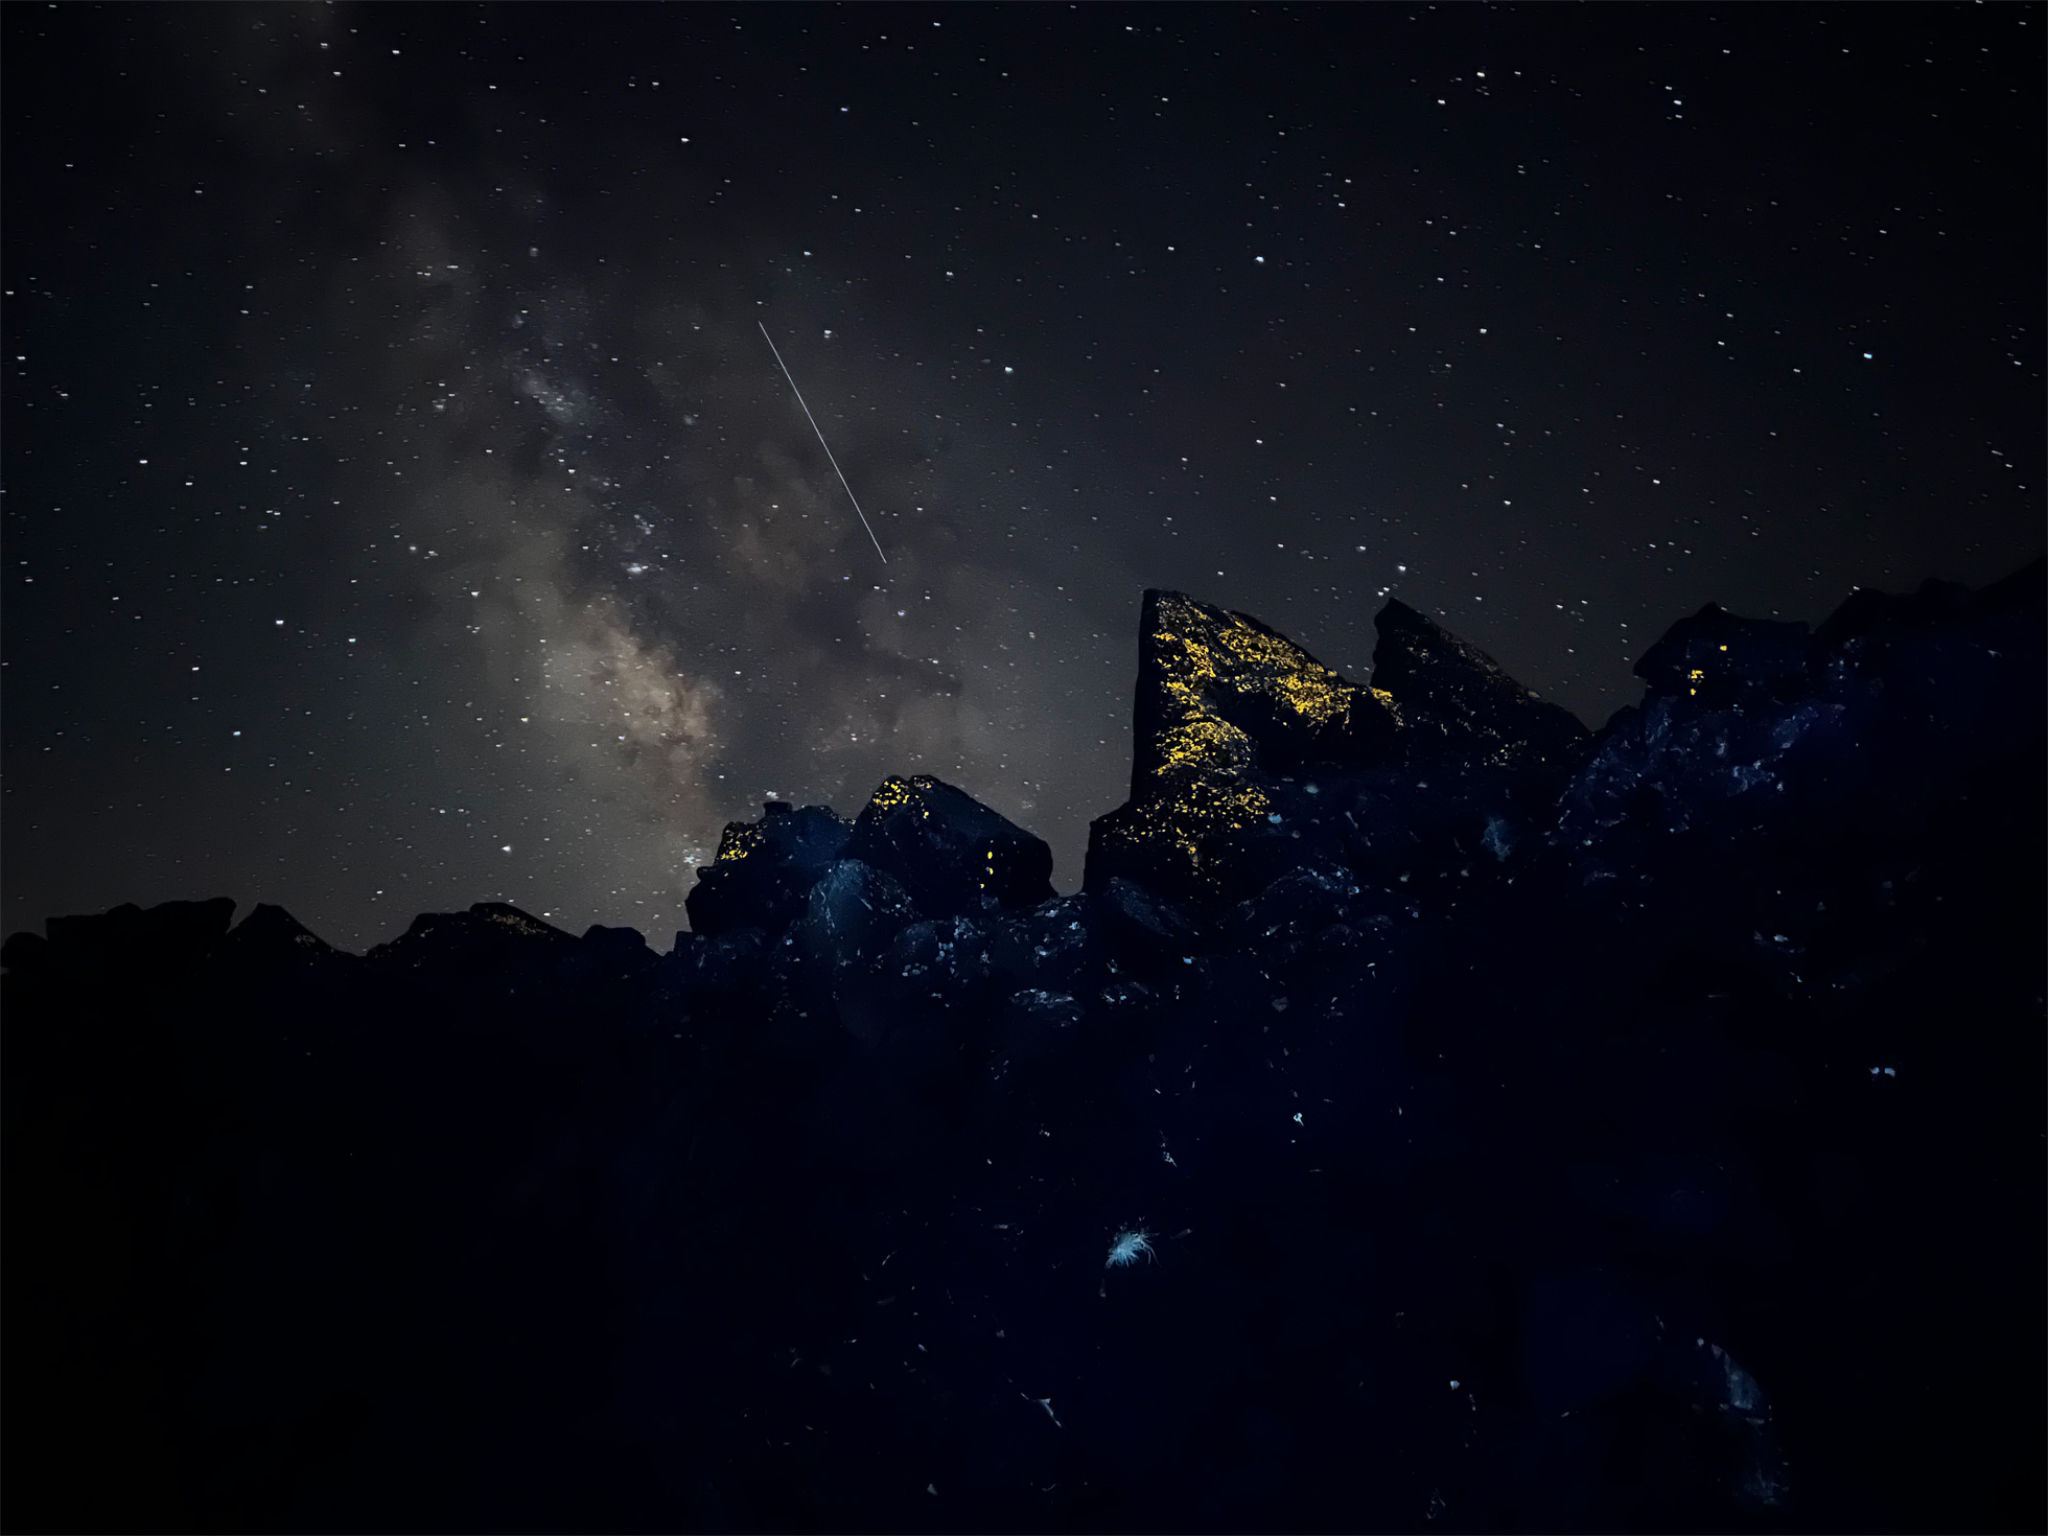 ontop.vn Apple iPhone 13 Pro Astrophotography 09142021